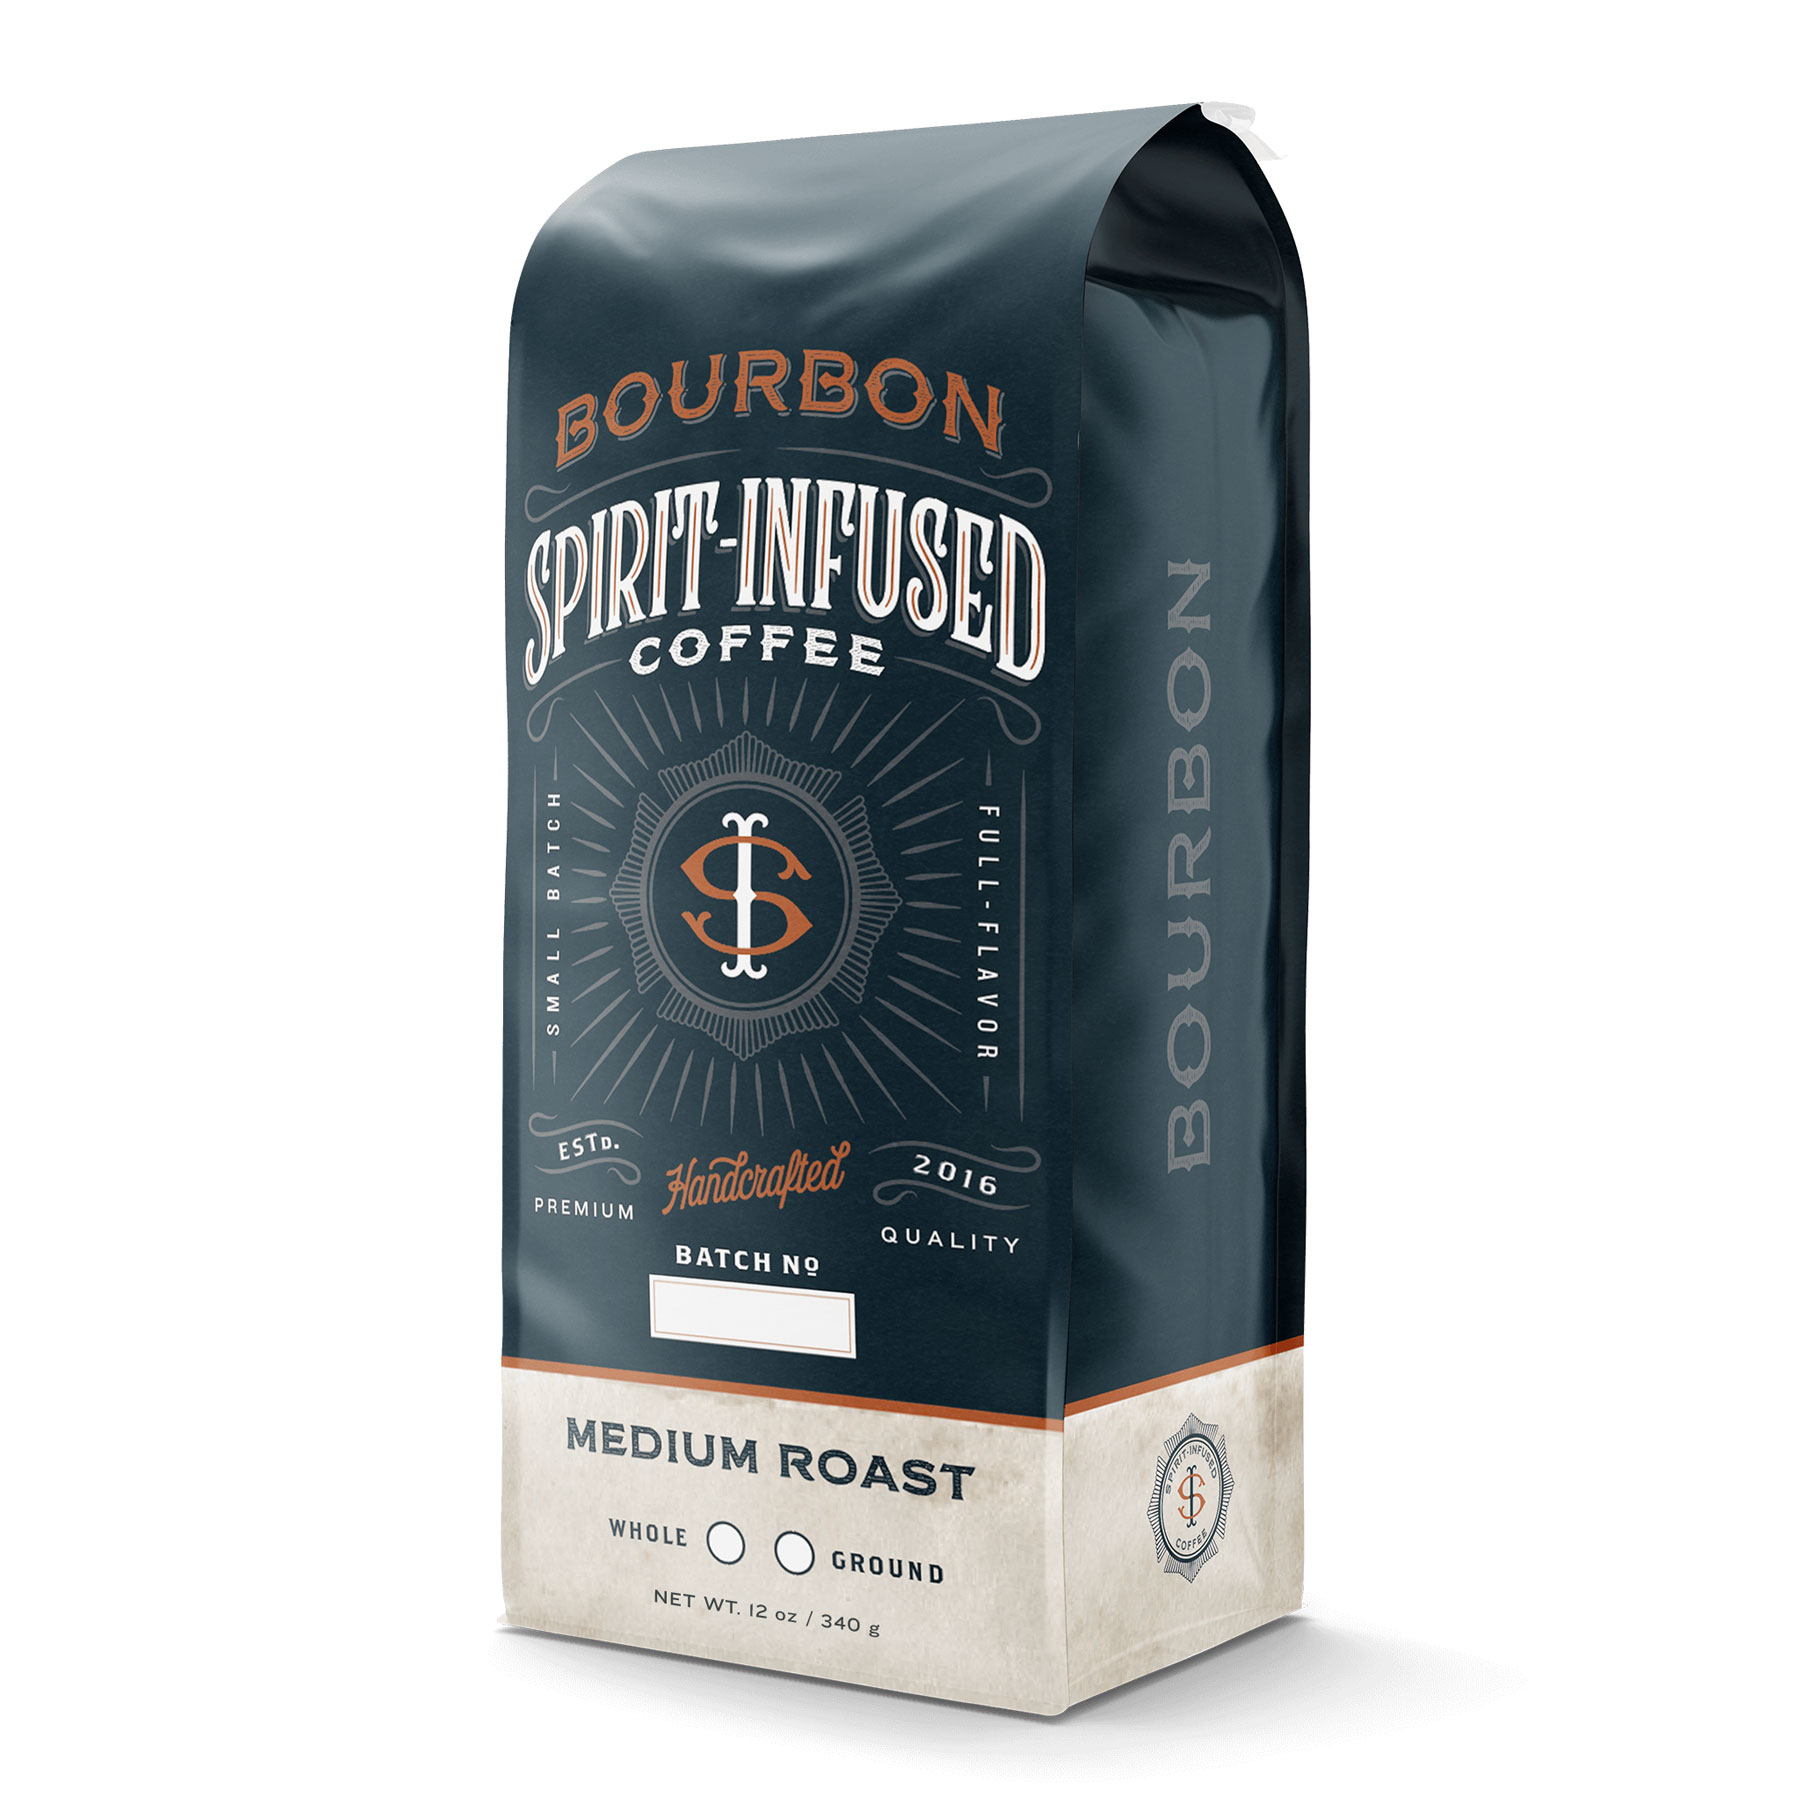 Best gifts for men, gift ideas for men - Fire Department Coffee Bourbon Infused Coffee